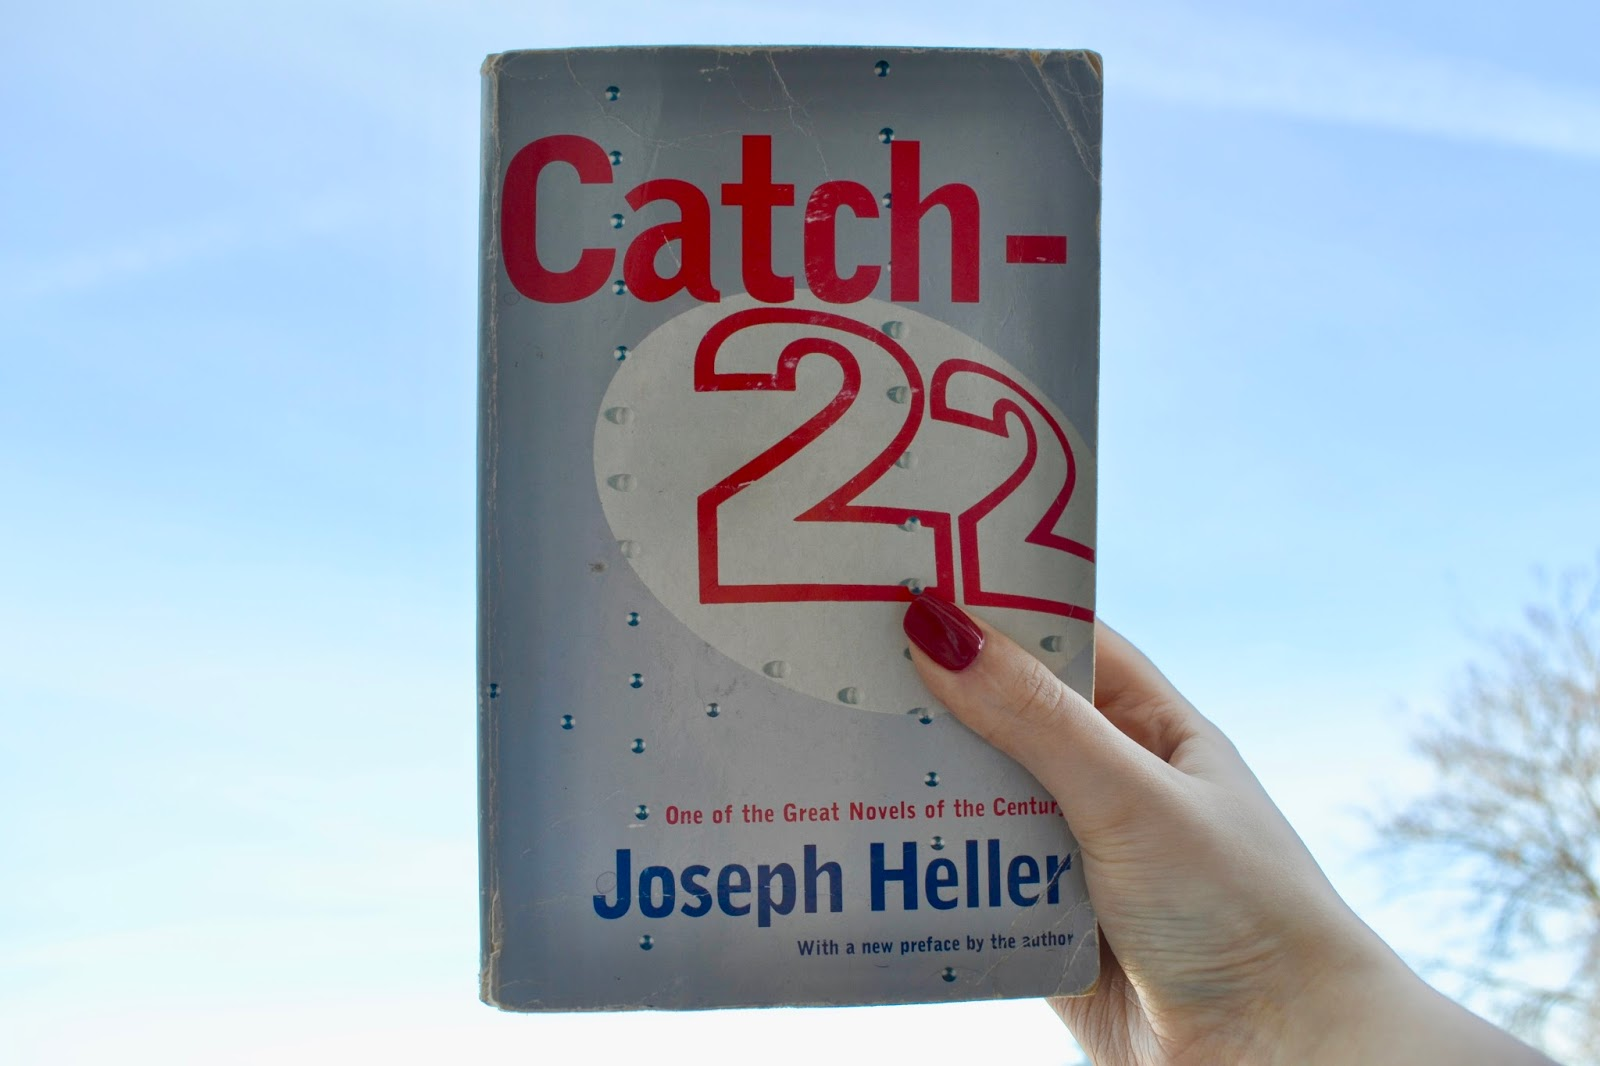 an analysis of post war attitudes in catch 22 by joseph heller Alcoholism in females essay attitudes and encounters is therefore personalities of war - catch 22, by joseph heller.